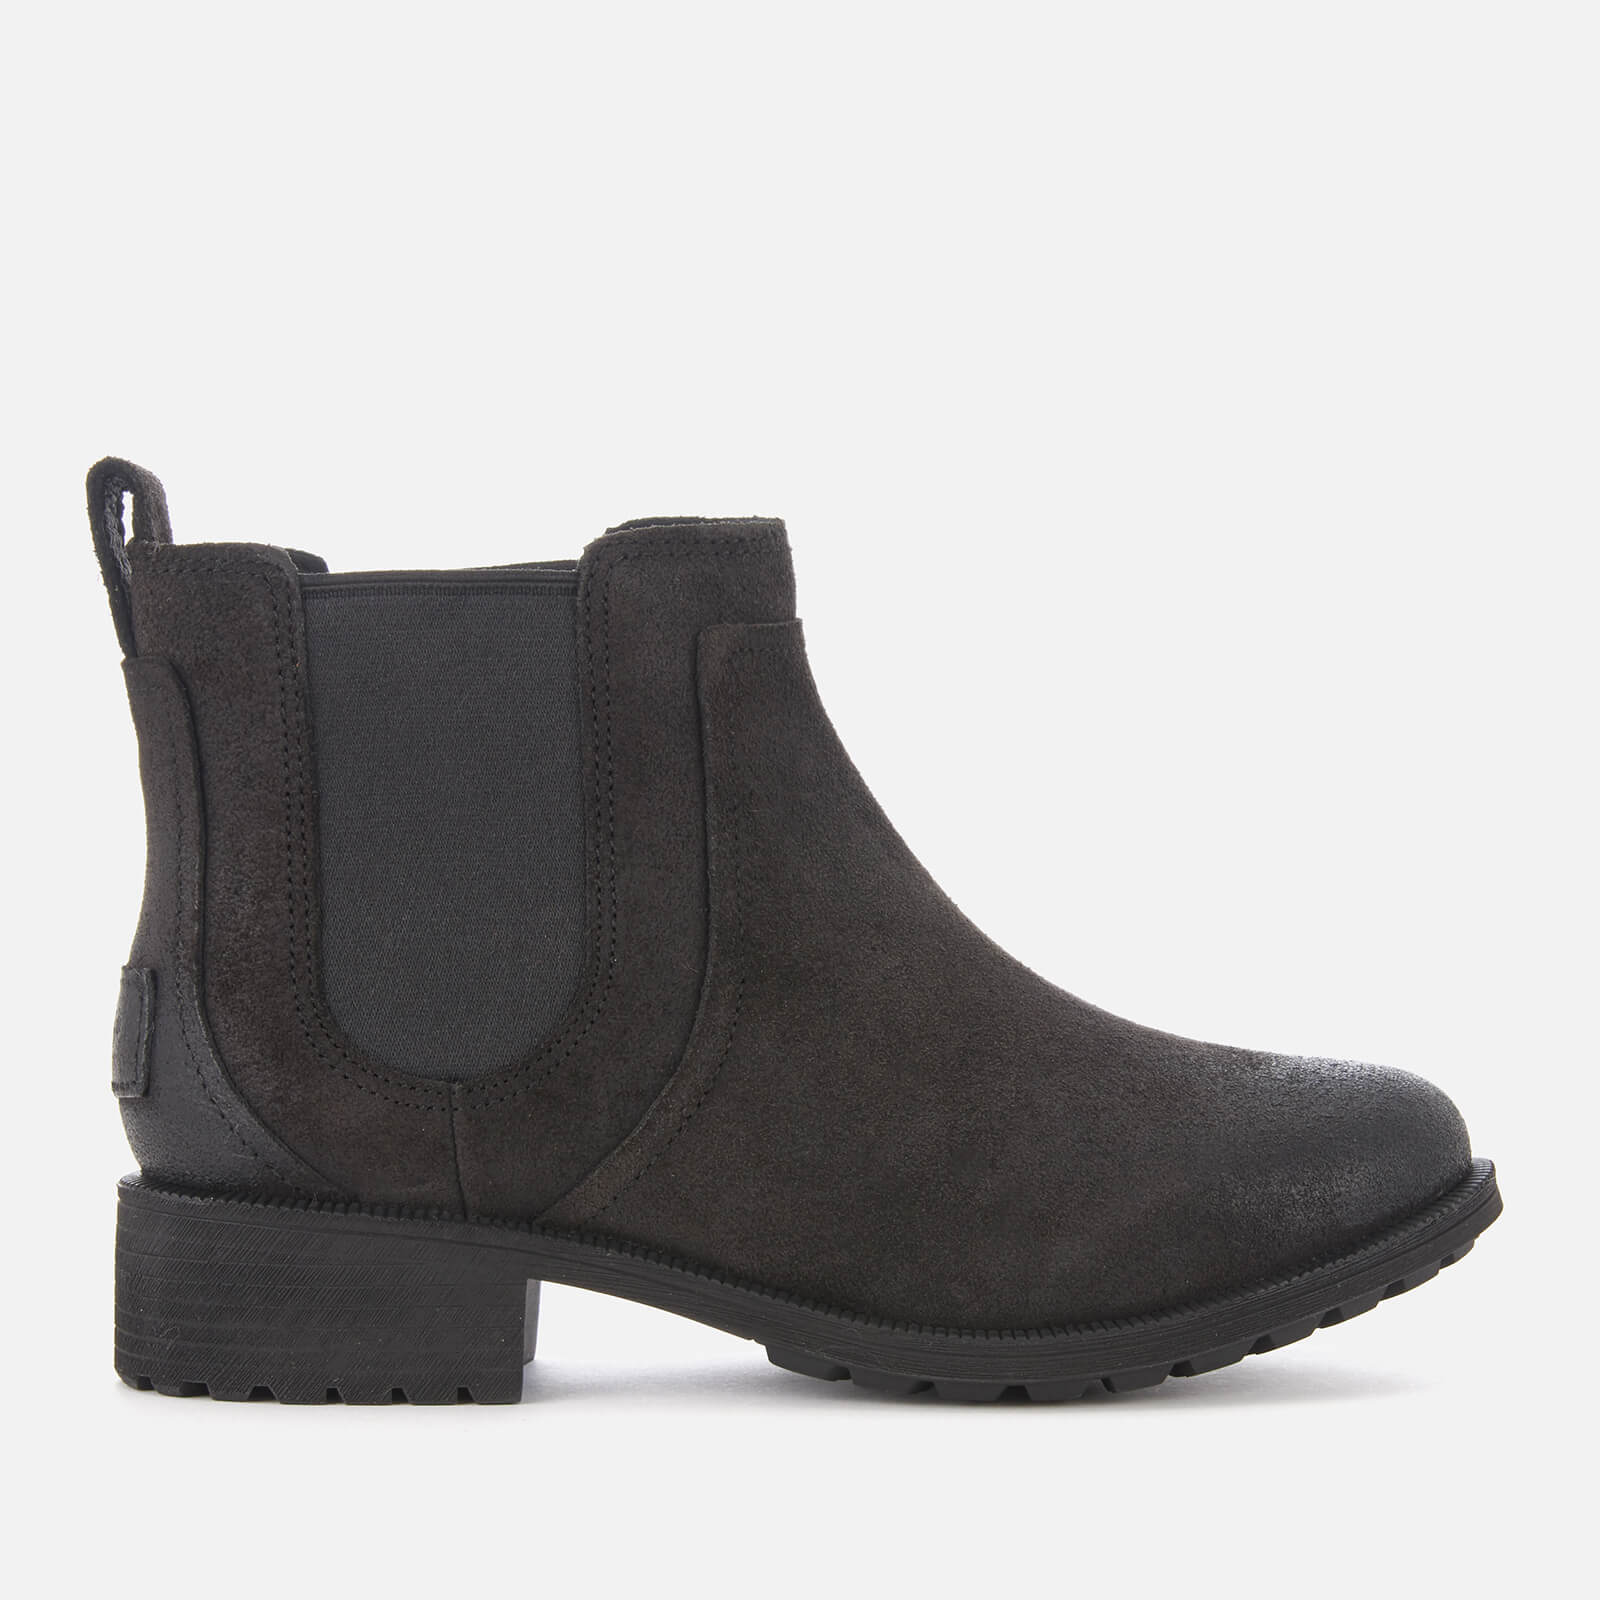 c4b6f1561cf UGG Women's Bonham II Waterproof Leather Chelsea Boots - Black